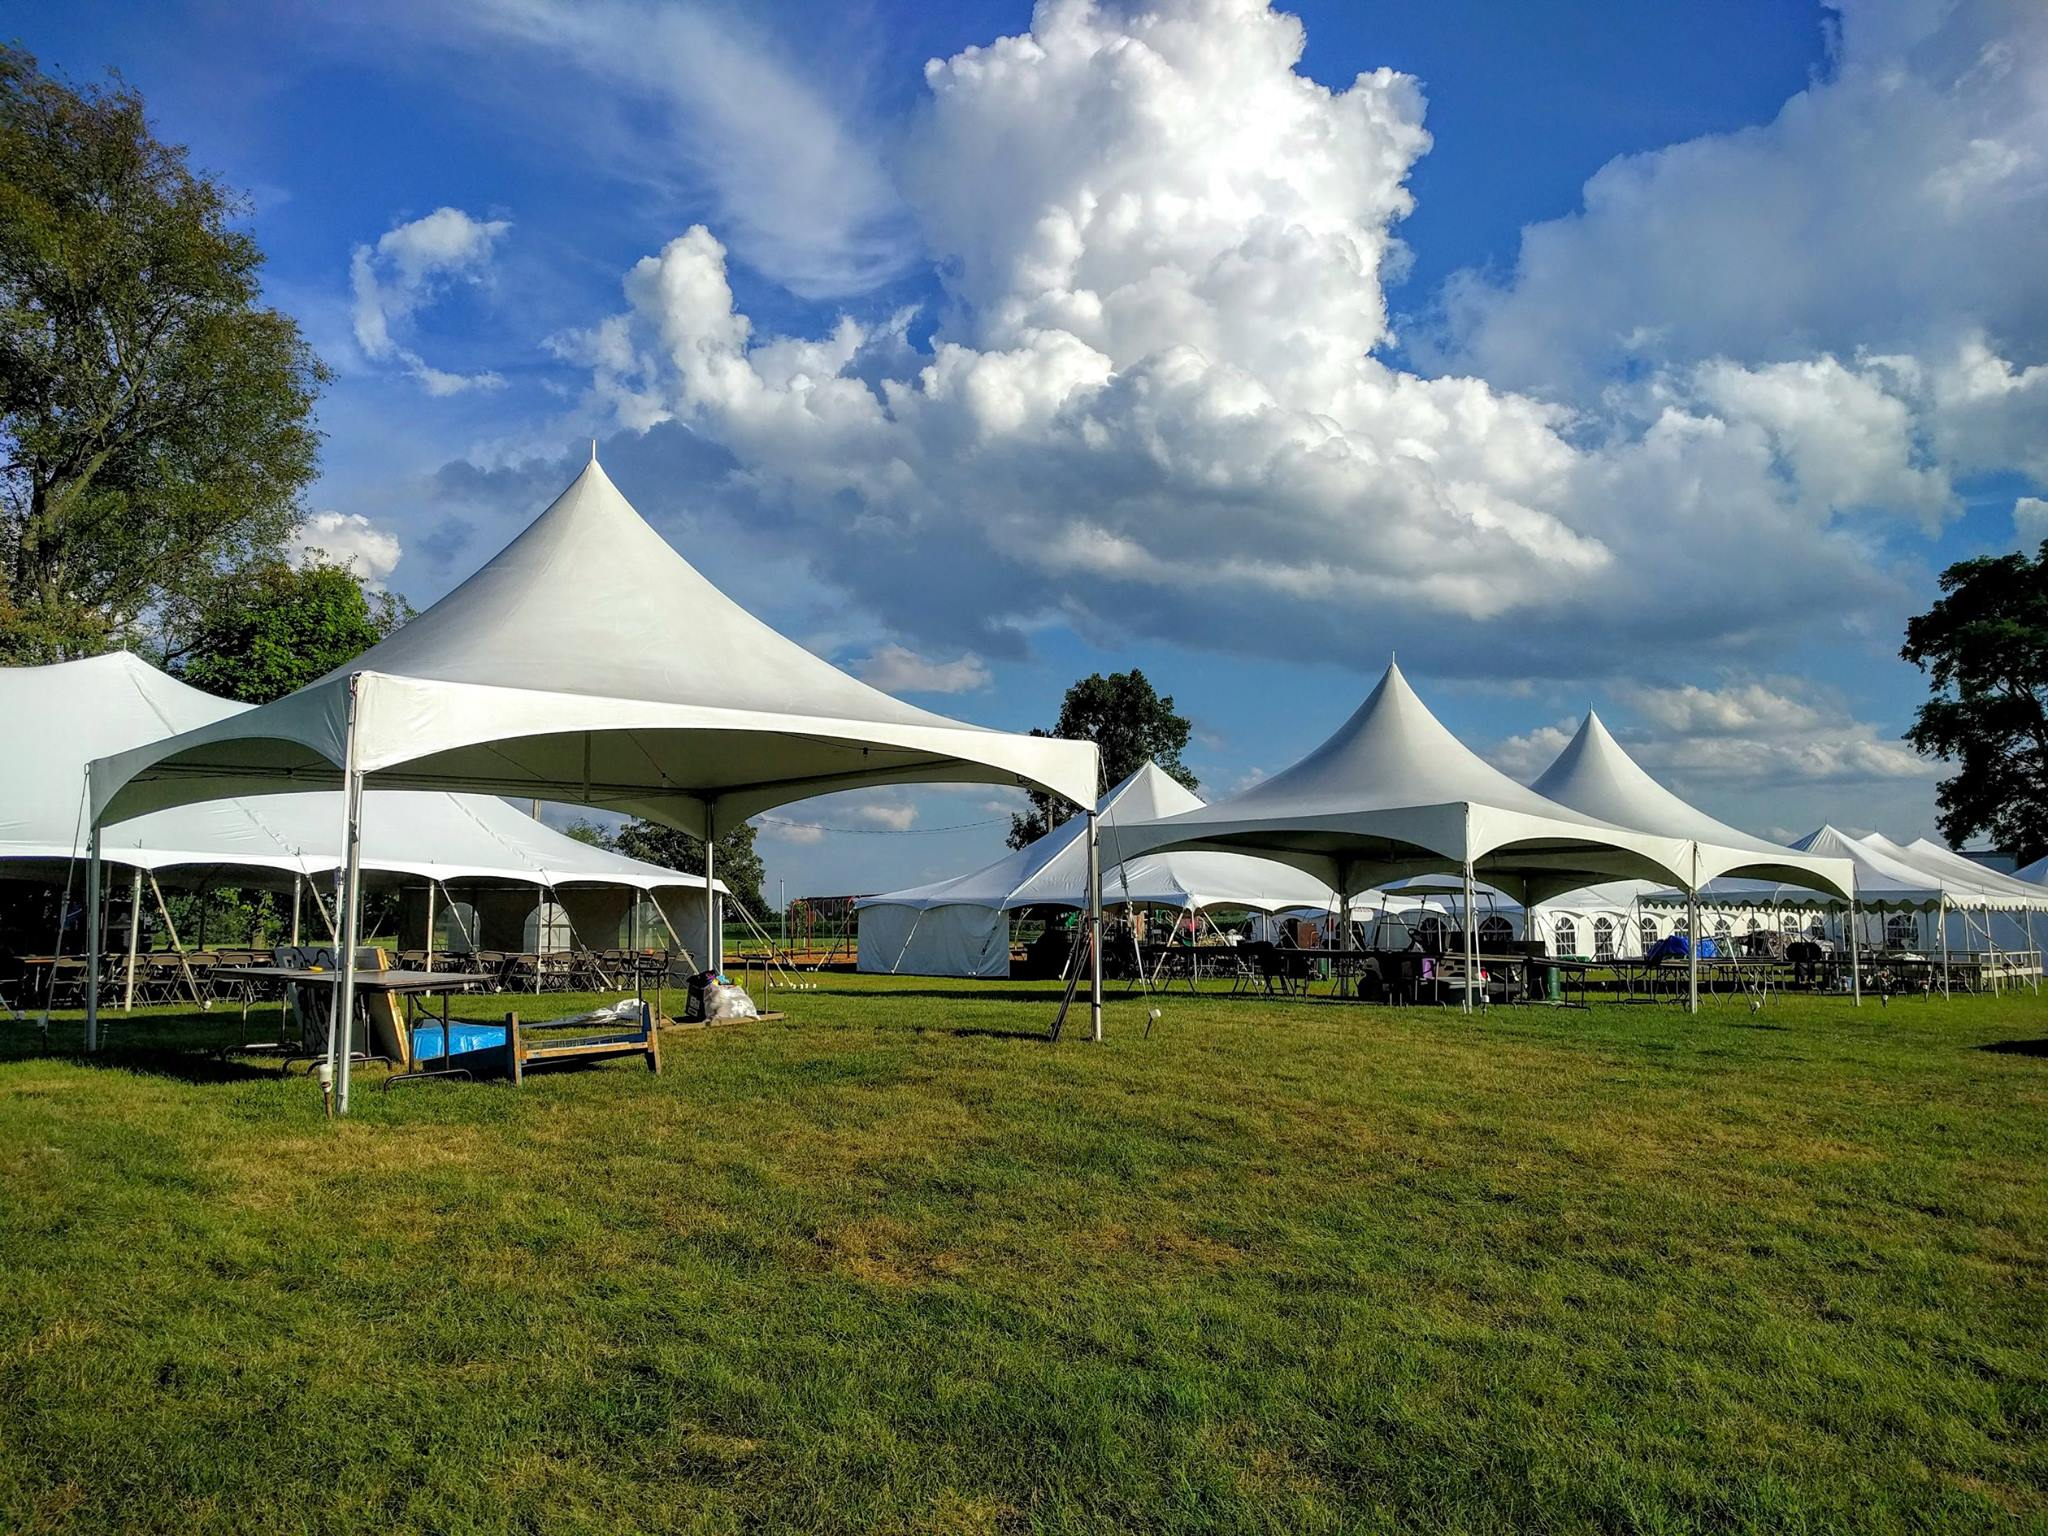 3 - 20' x 20' High Peak Frame Tents